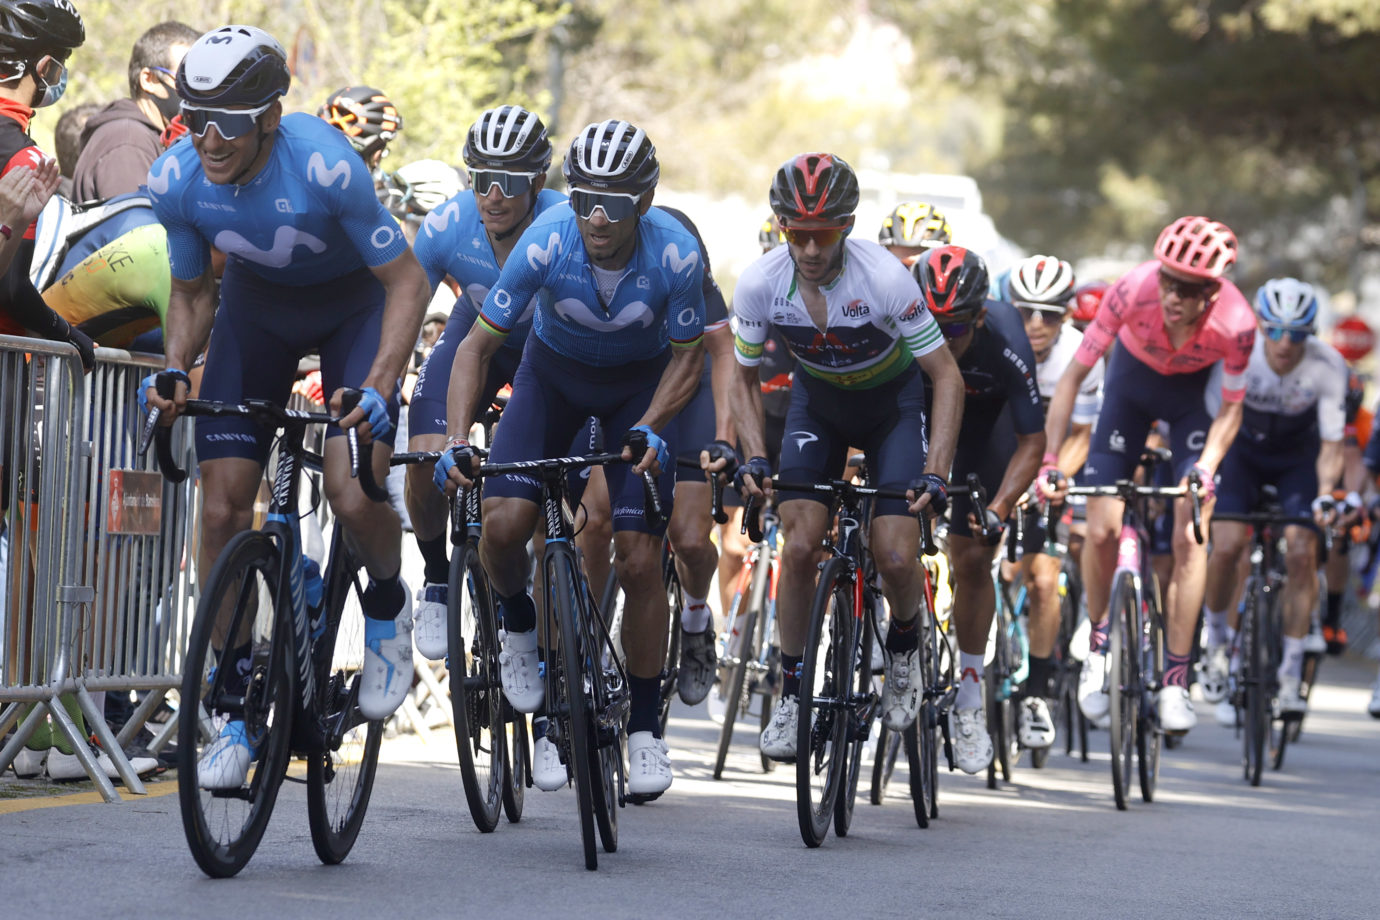 News' image'Valverde (4º) y Movistar Team pelean hasta el final en Montjuïc'